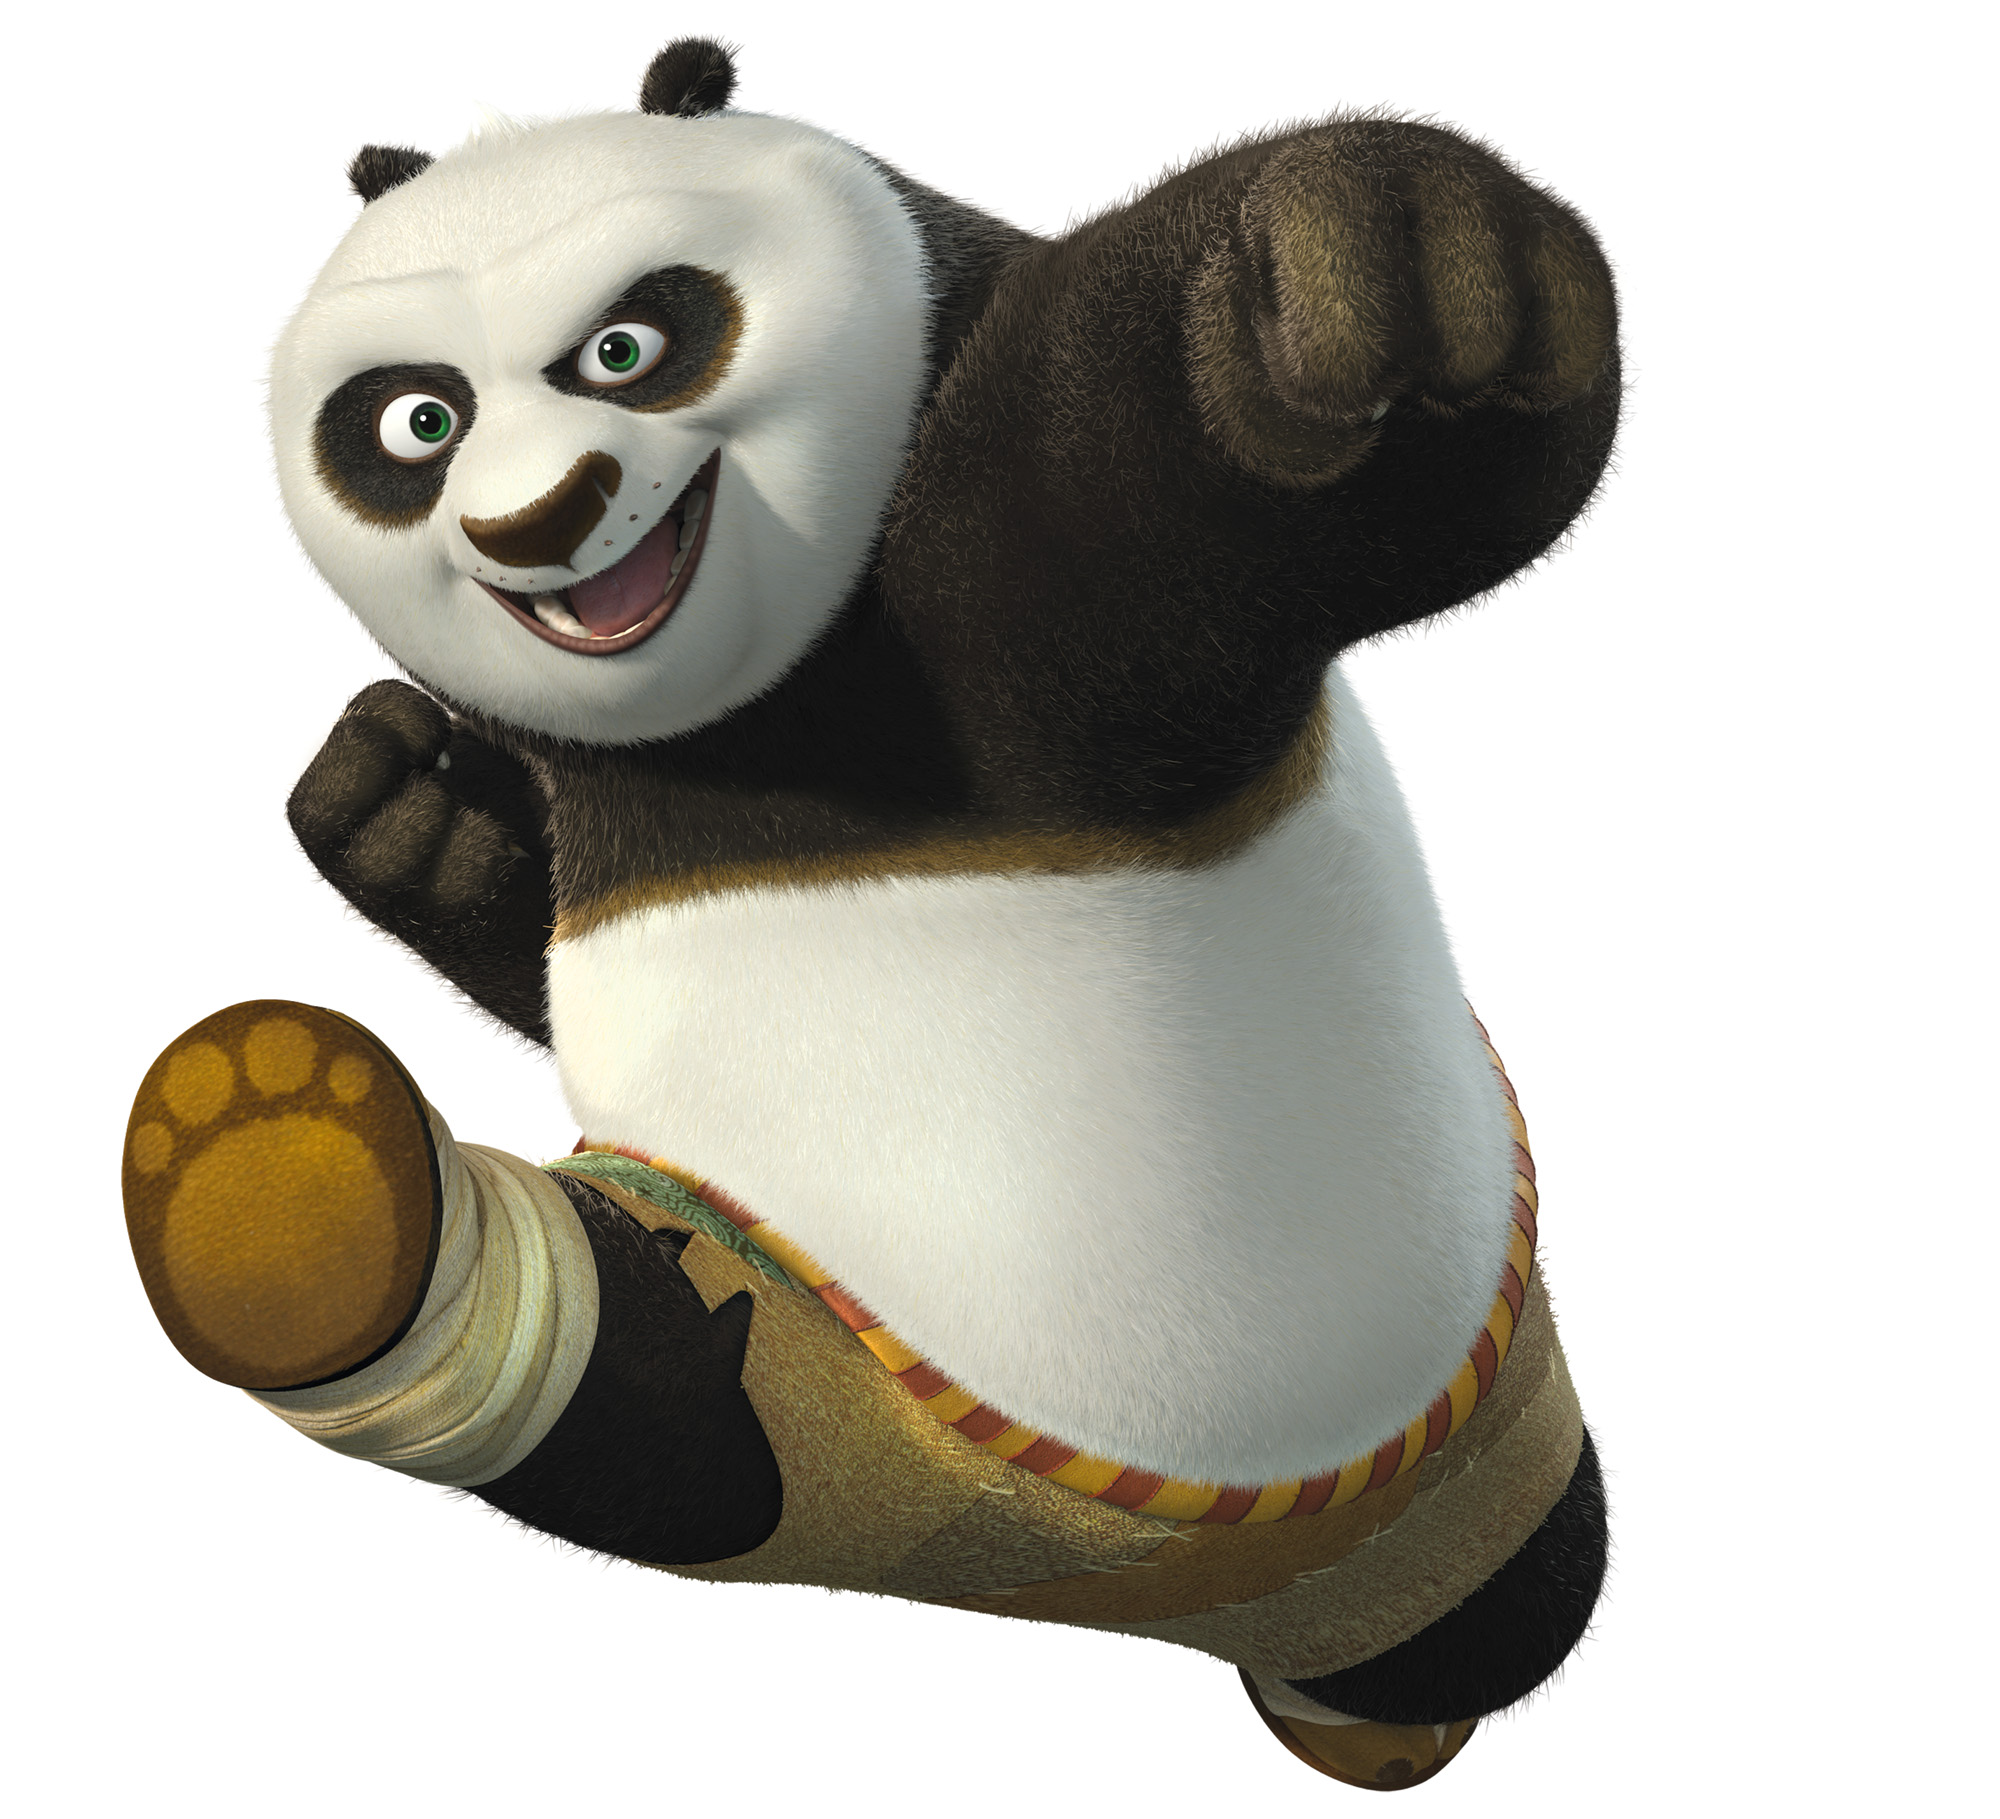 Kung Fu Panda 2 Opens Tomorrow | Velez's View